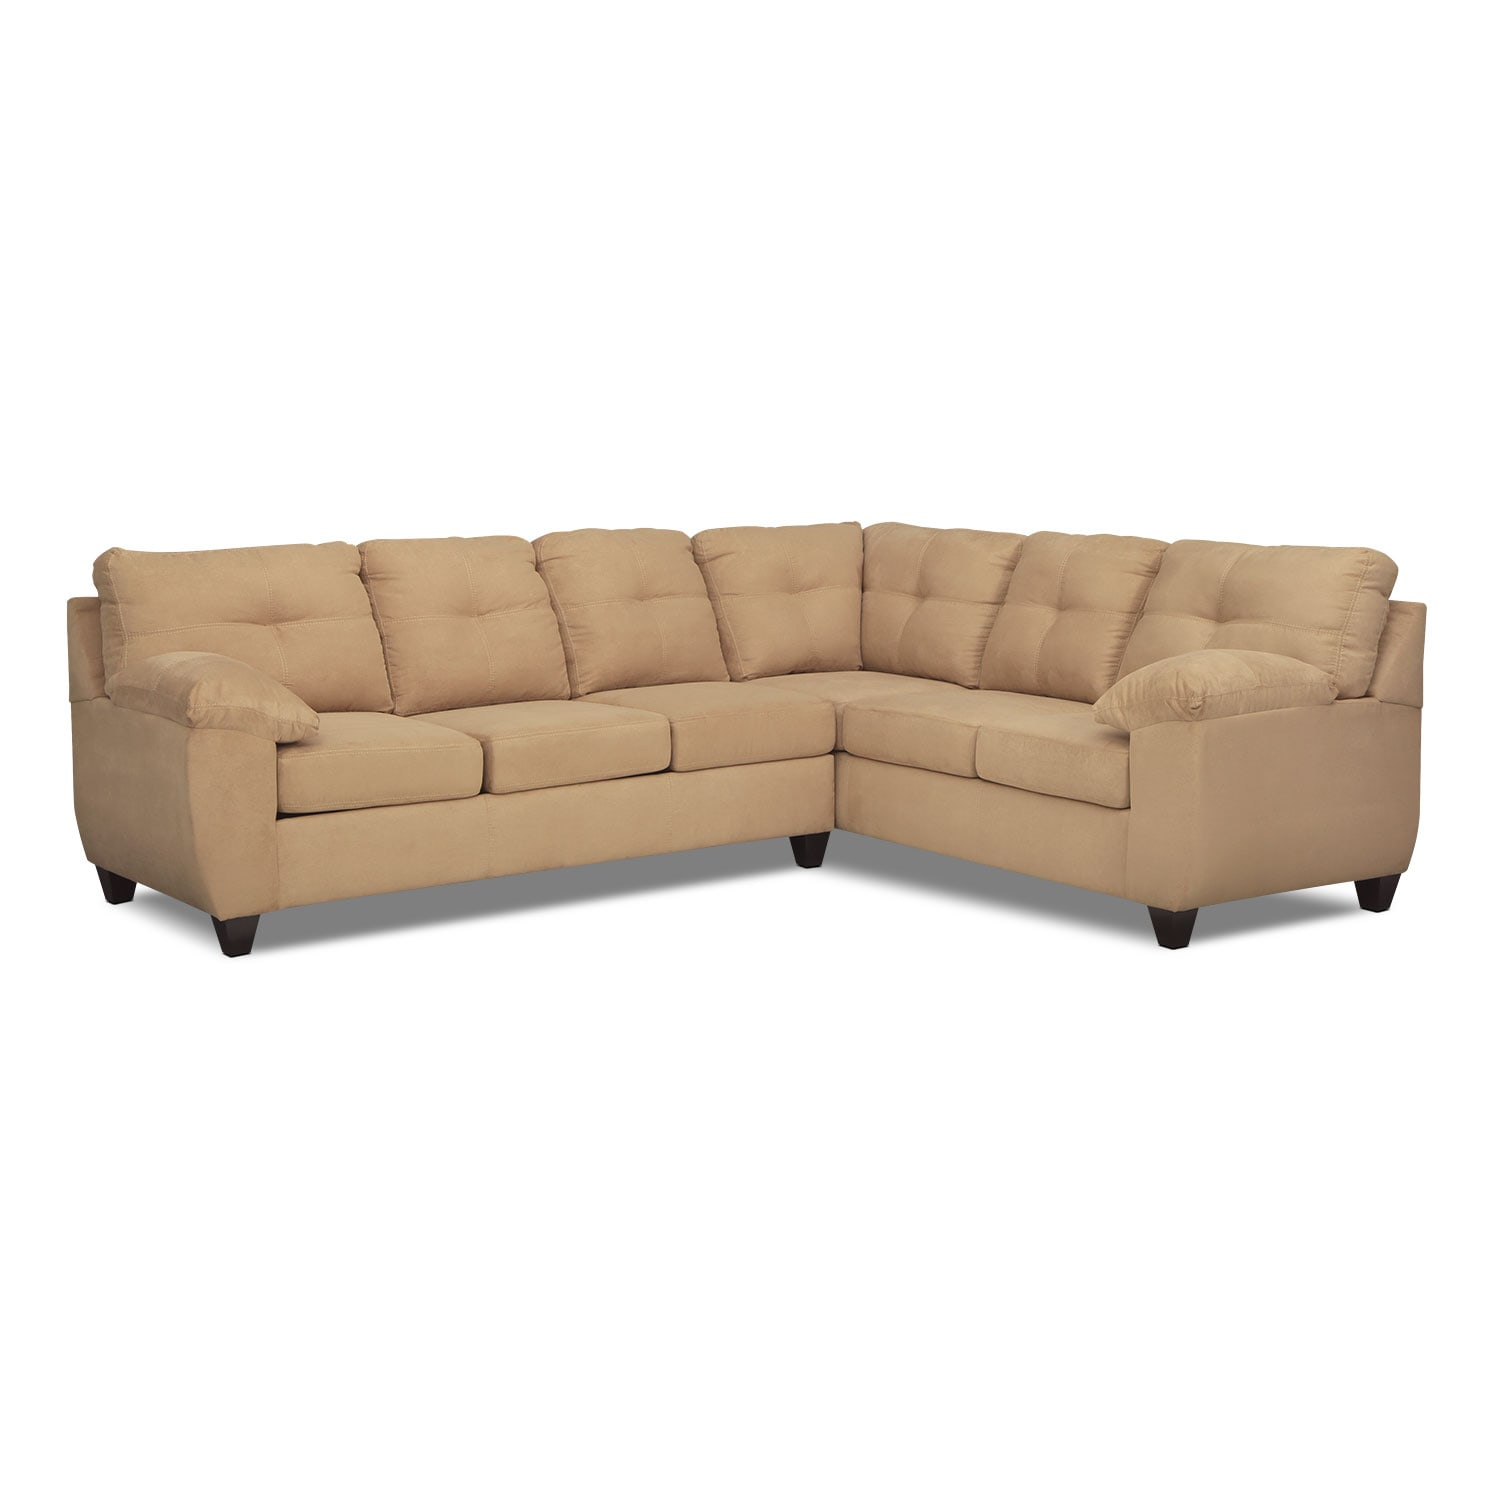 Rialto 2-Piece Sectional with Left-Facing Memory Foam Sleeper - Camel